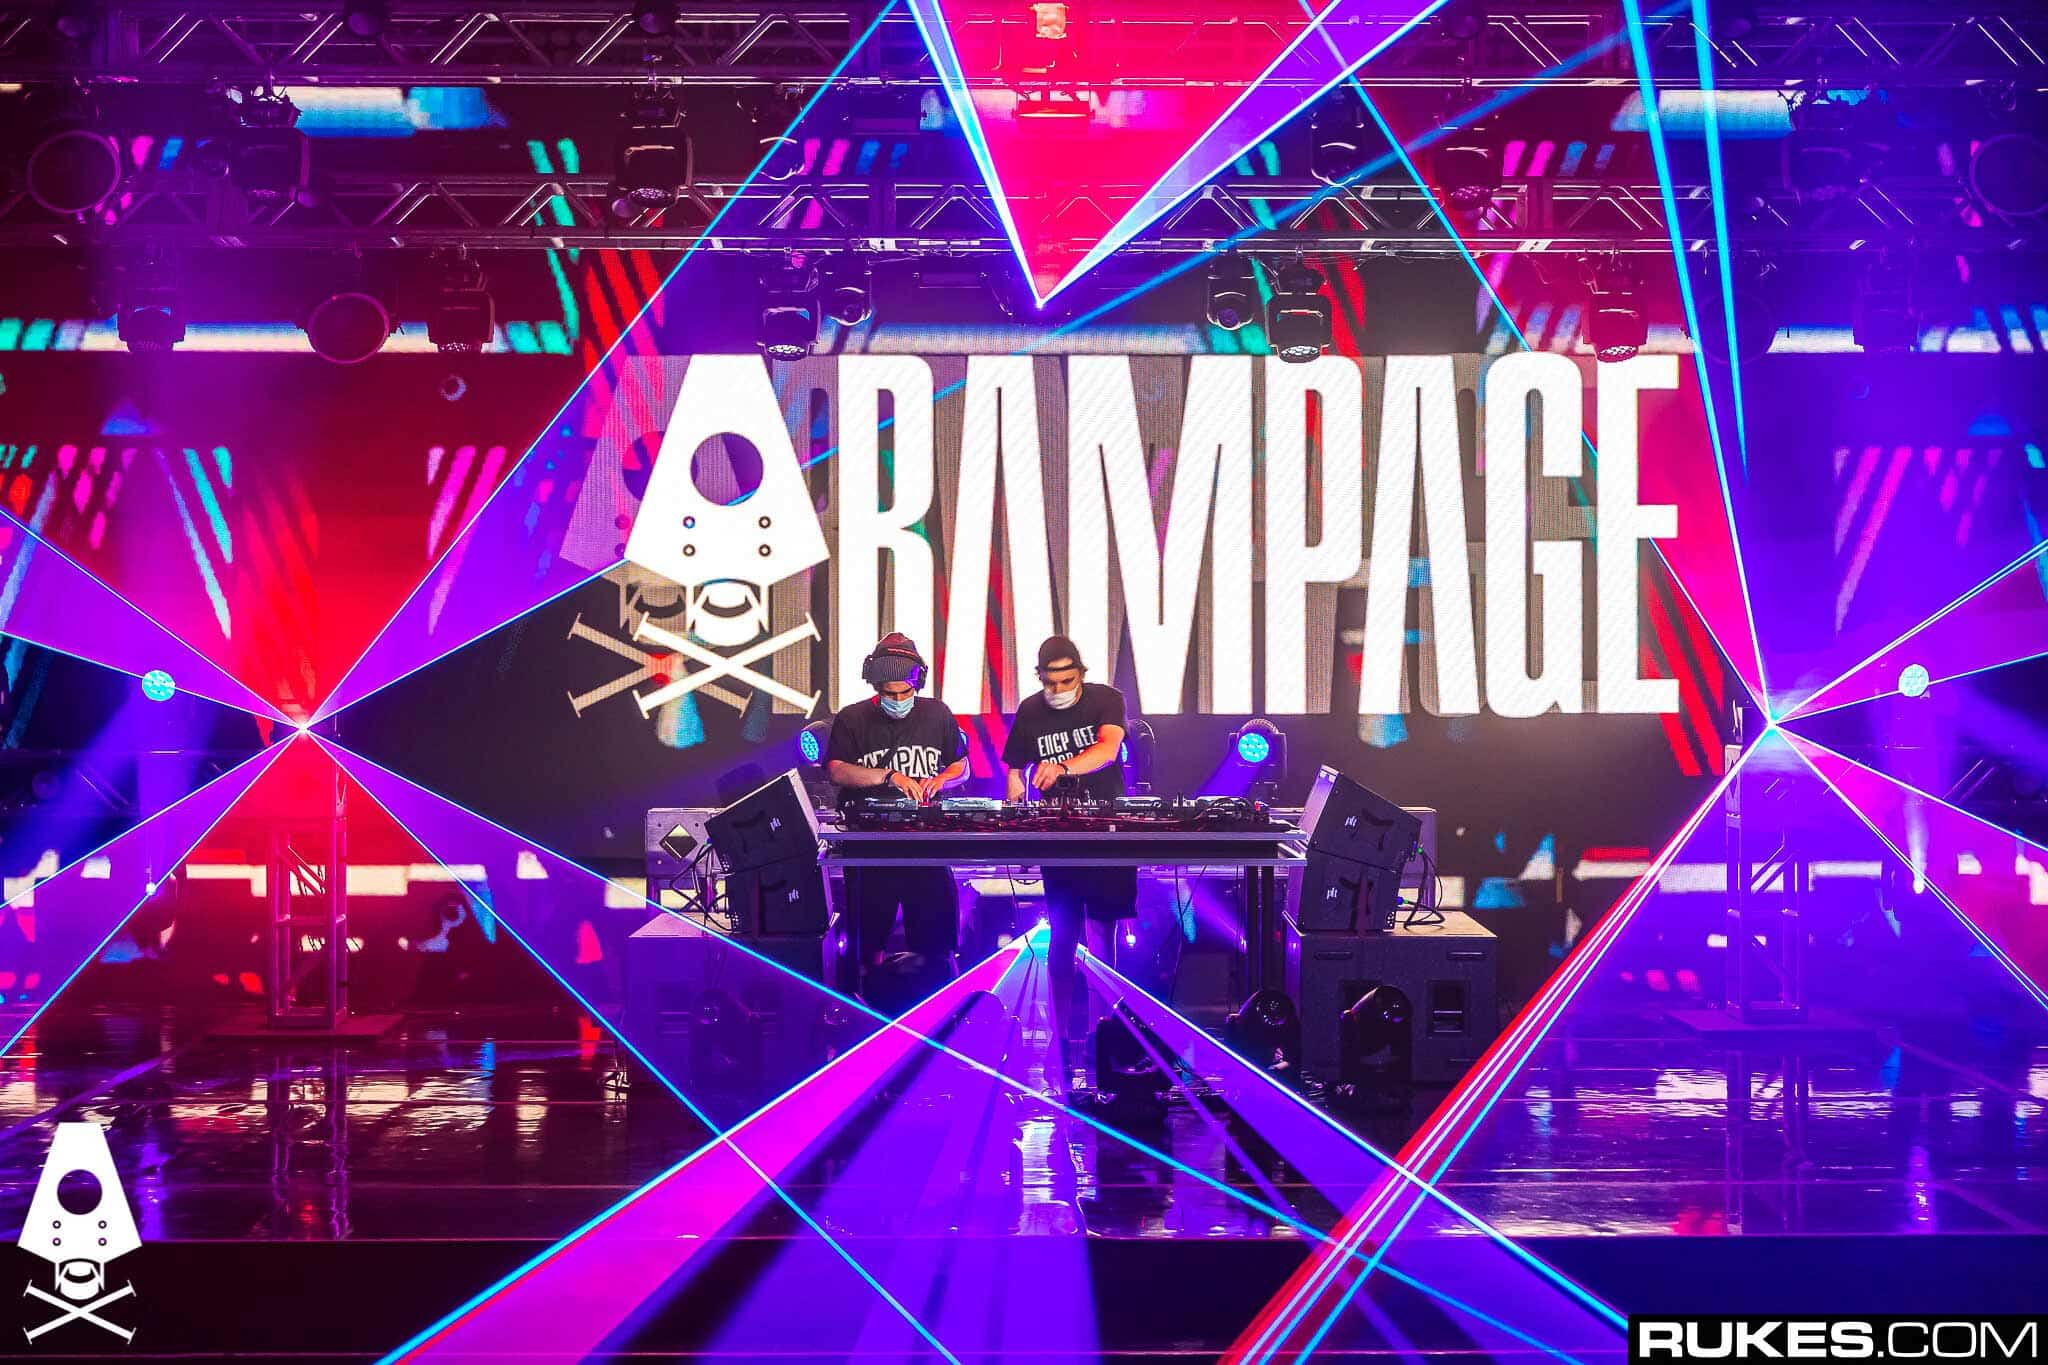 Rampage 2020 Goes Virtual | Incredible Online Laser Show